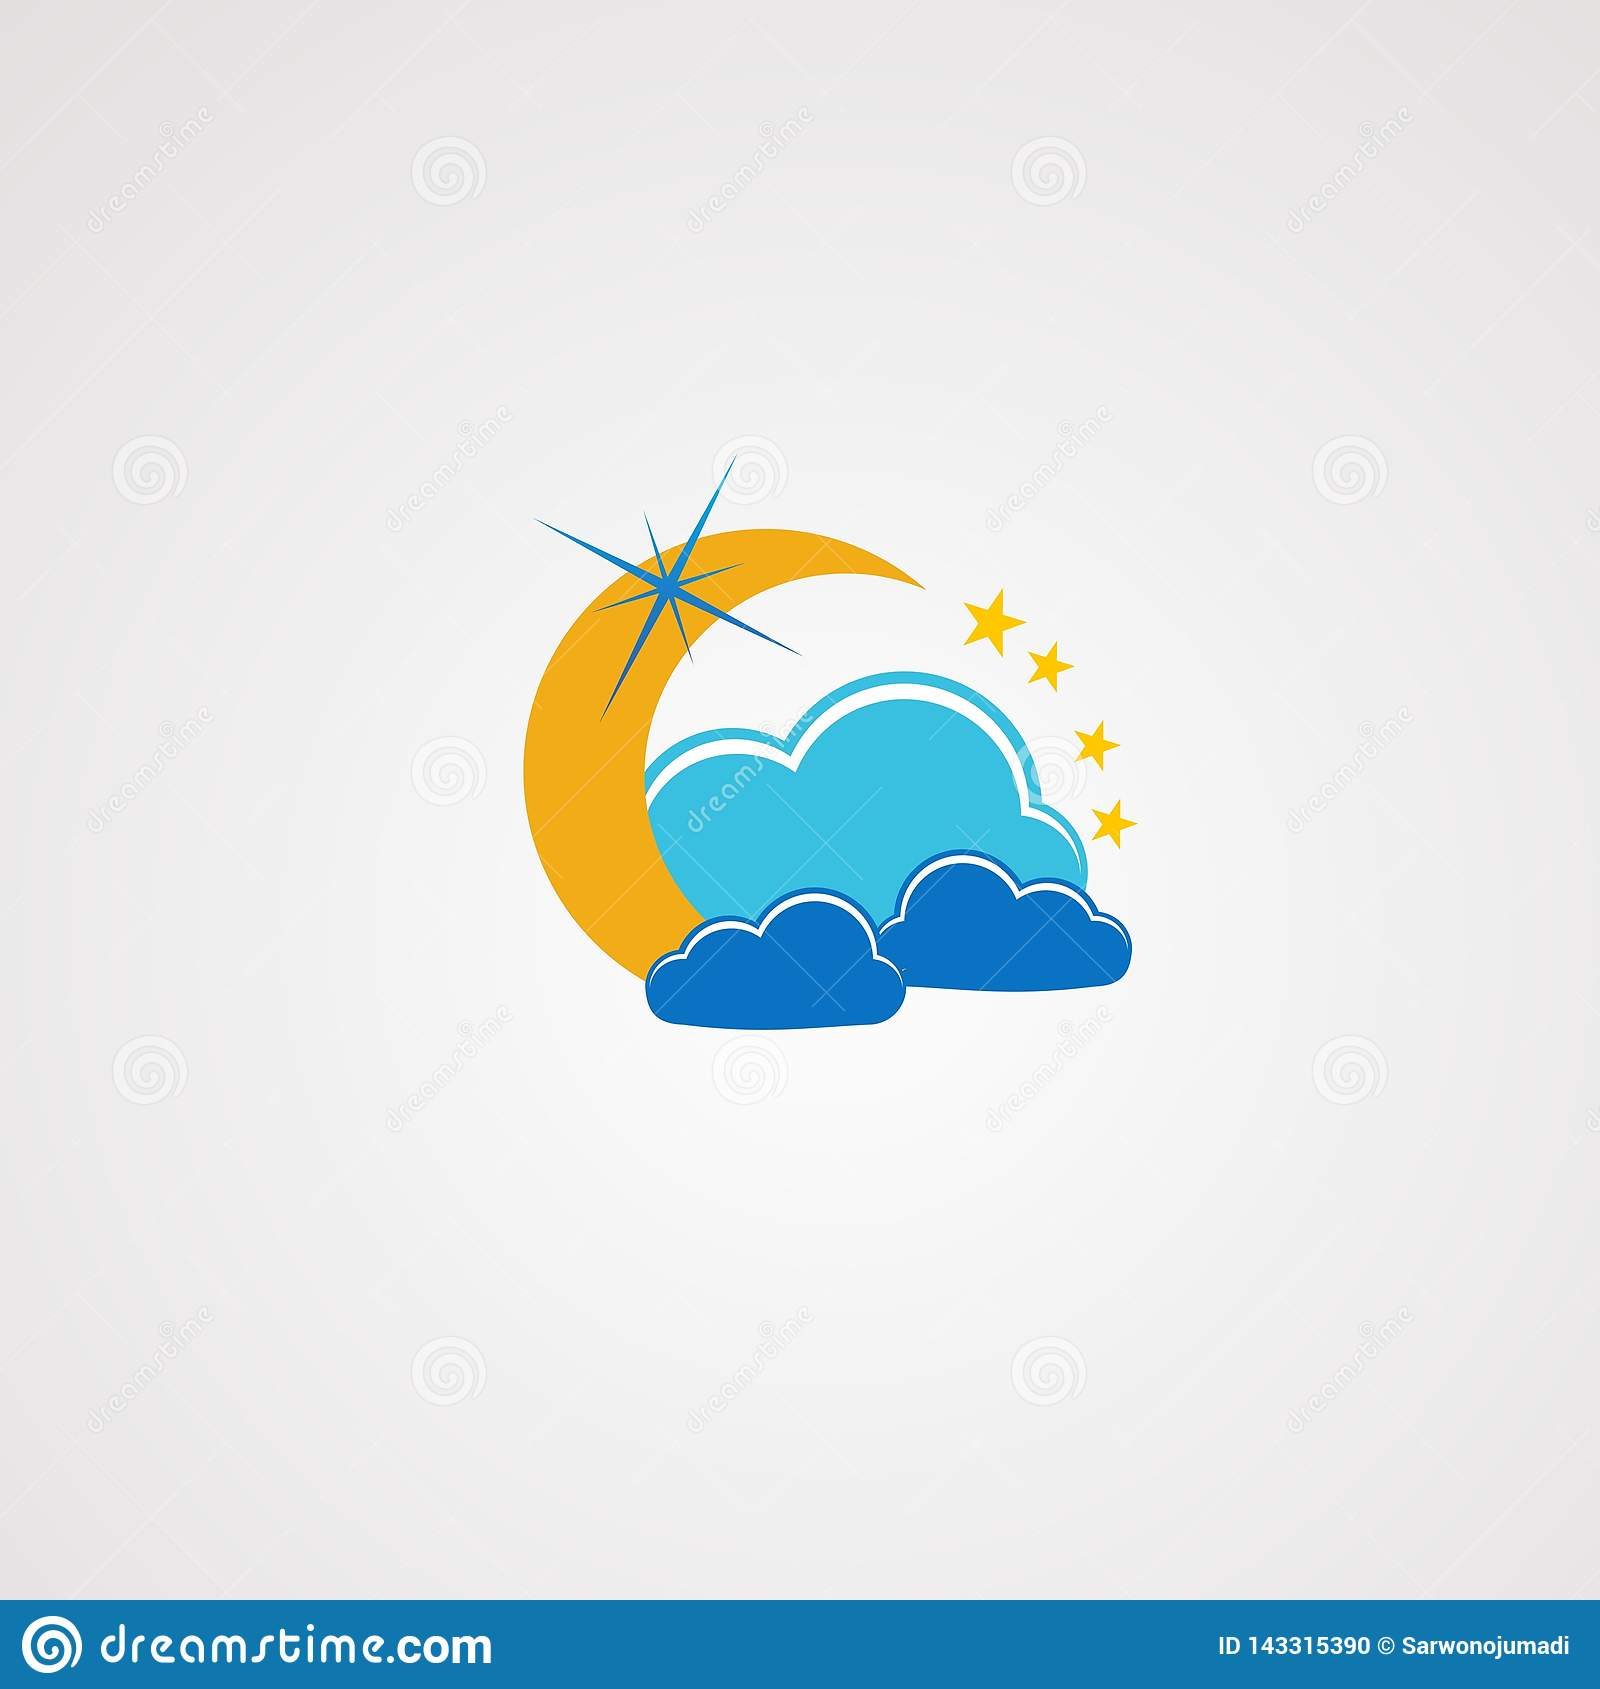 Dream cloud with little star logo vector, icon, element, and template for company